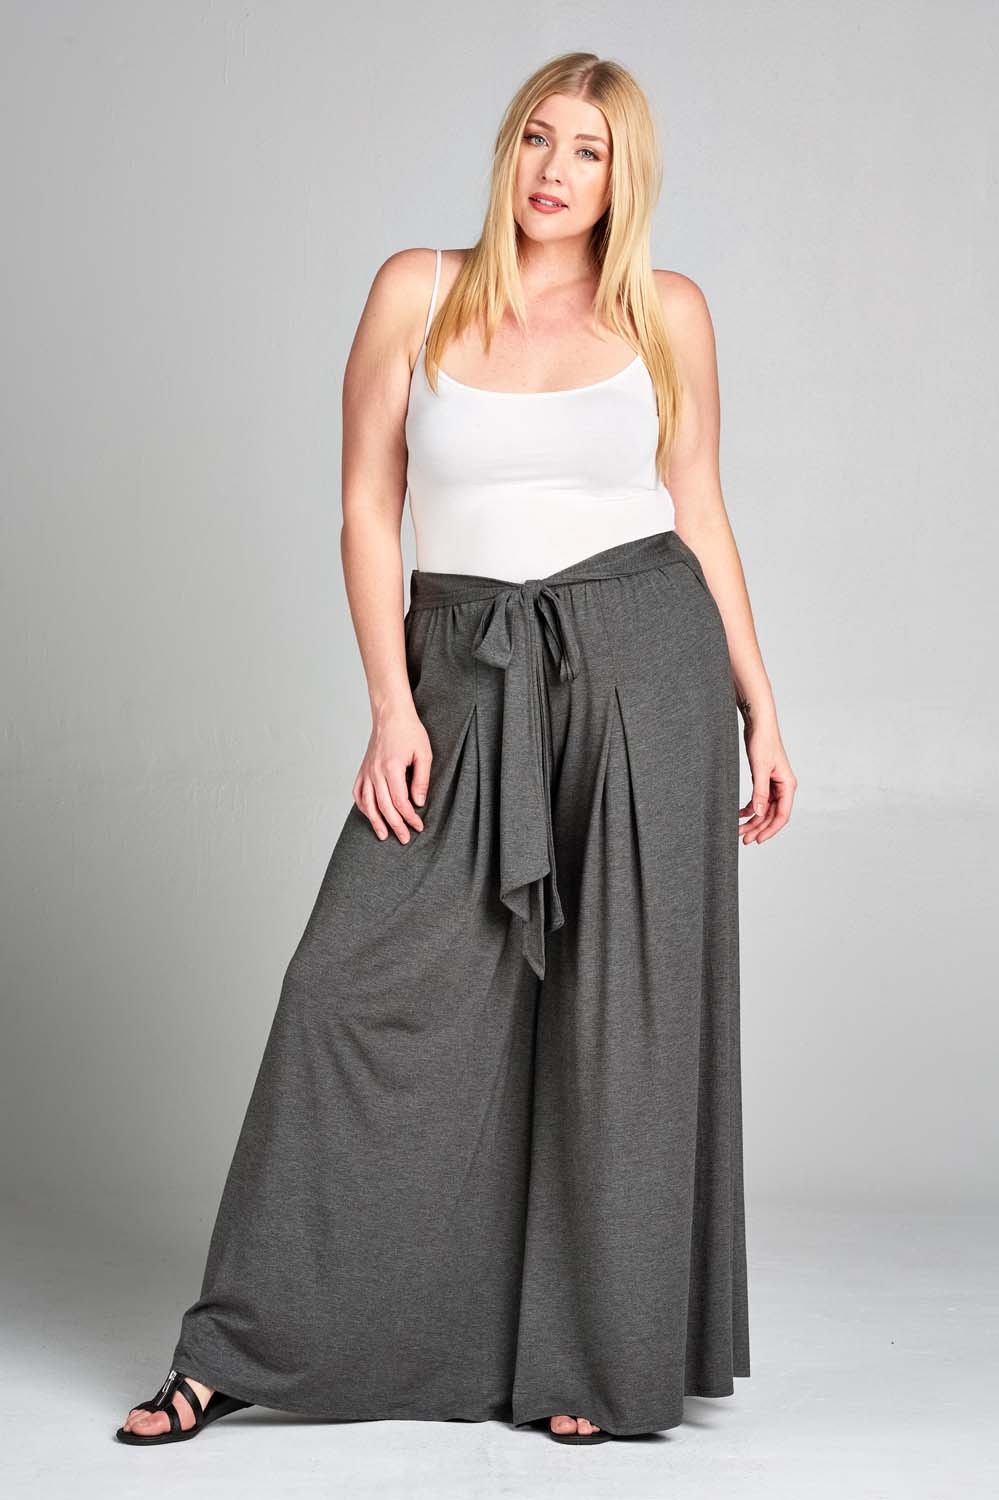 Rayon High Waisted Palazzo Pants - Charcoal - Curvy Clothes Australia - Afterpay Laybuy & Humm Online